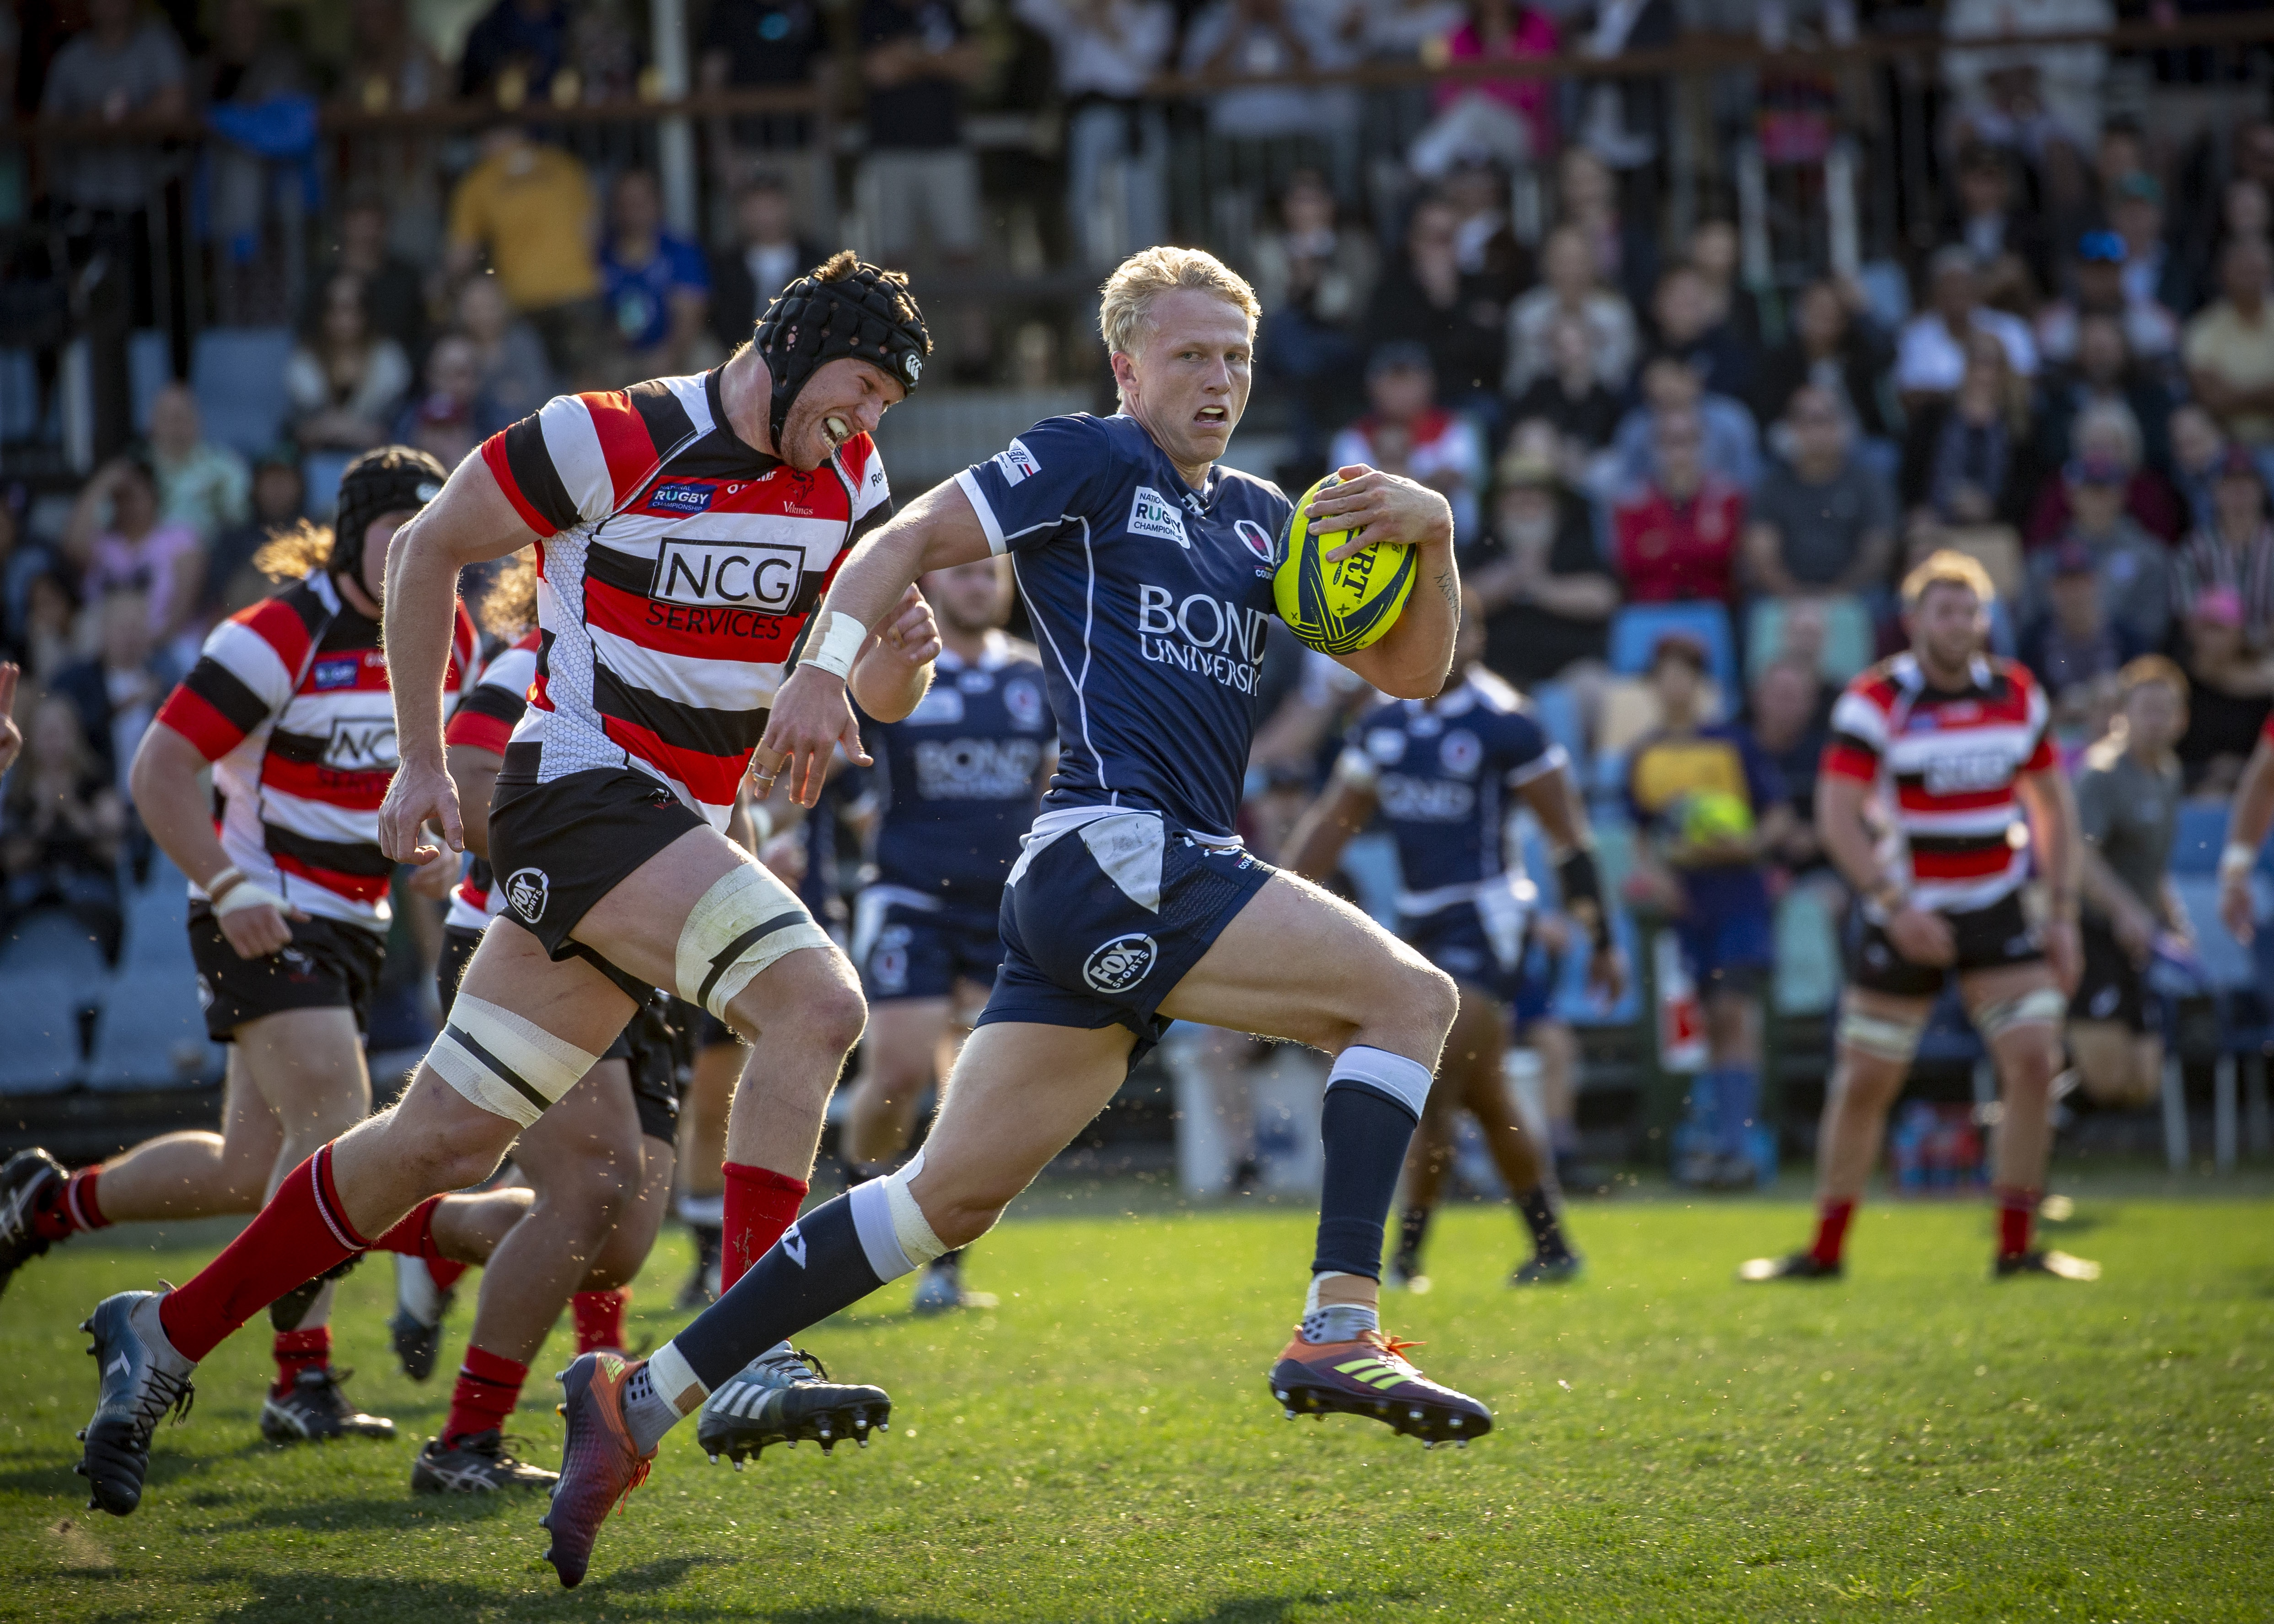 Queensland Country thumped in Ballarat NRC game